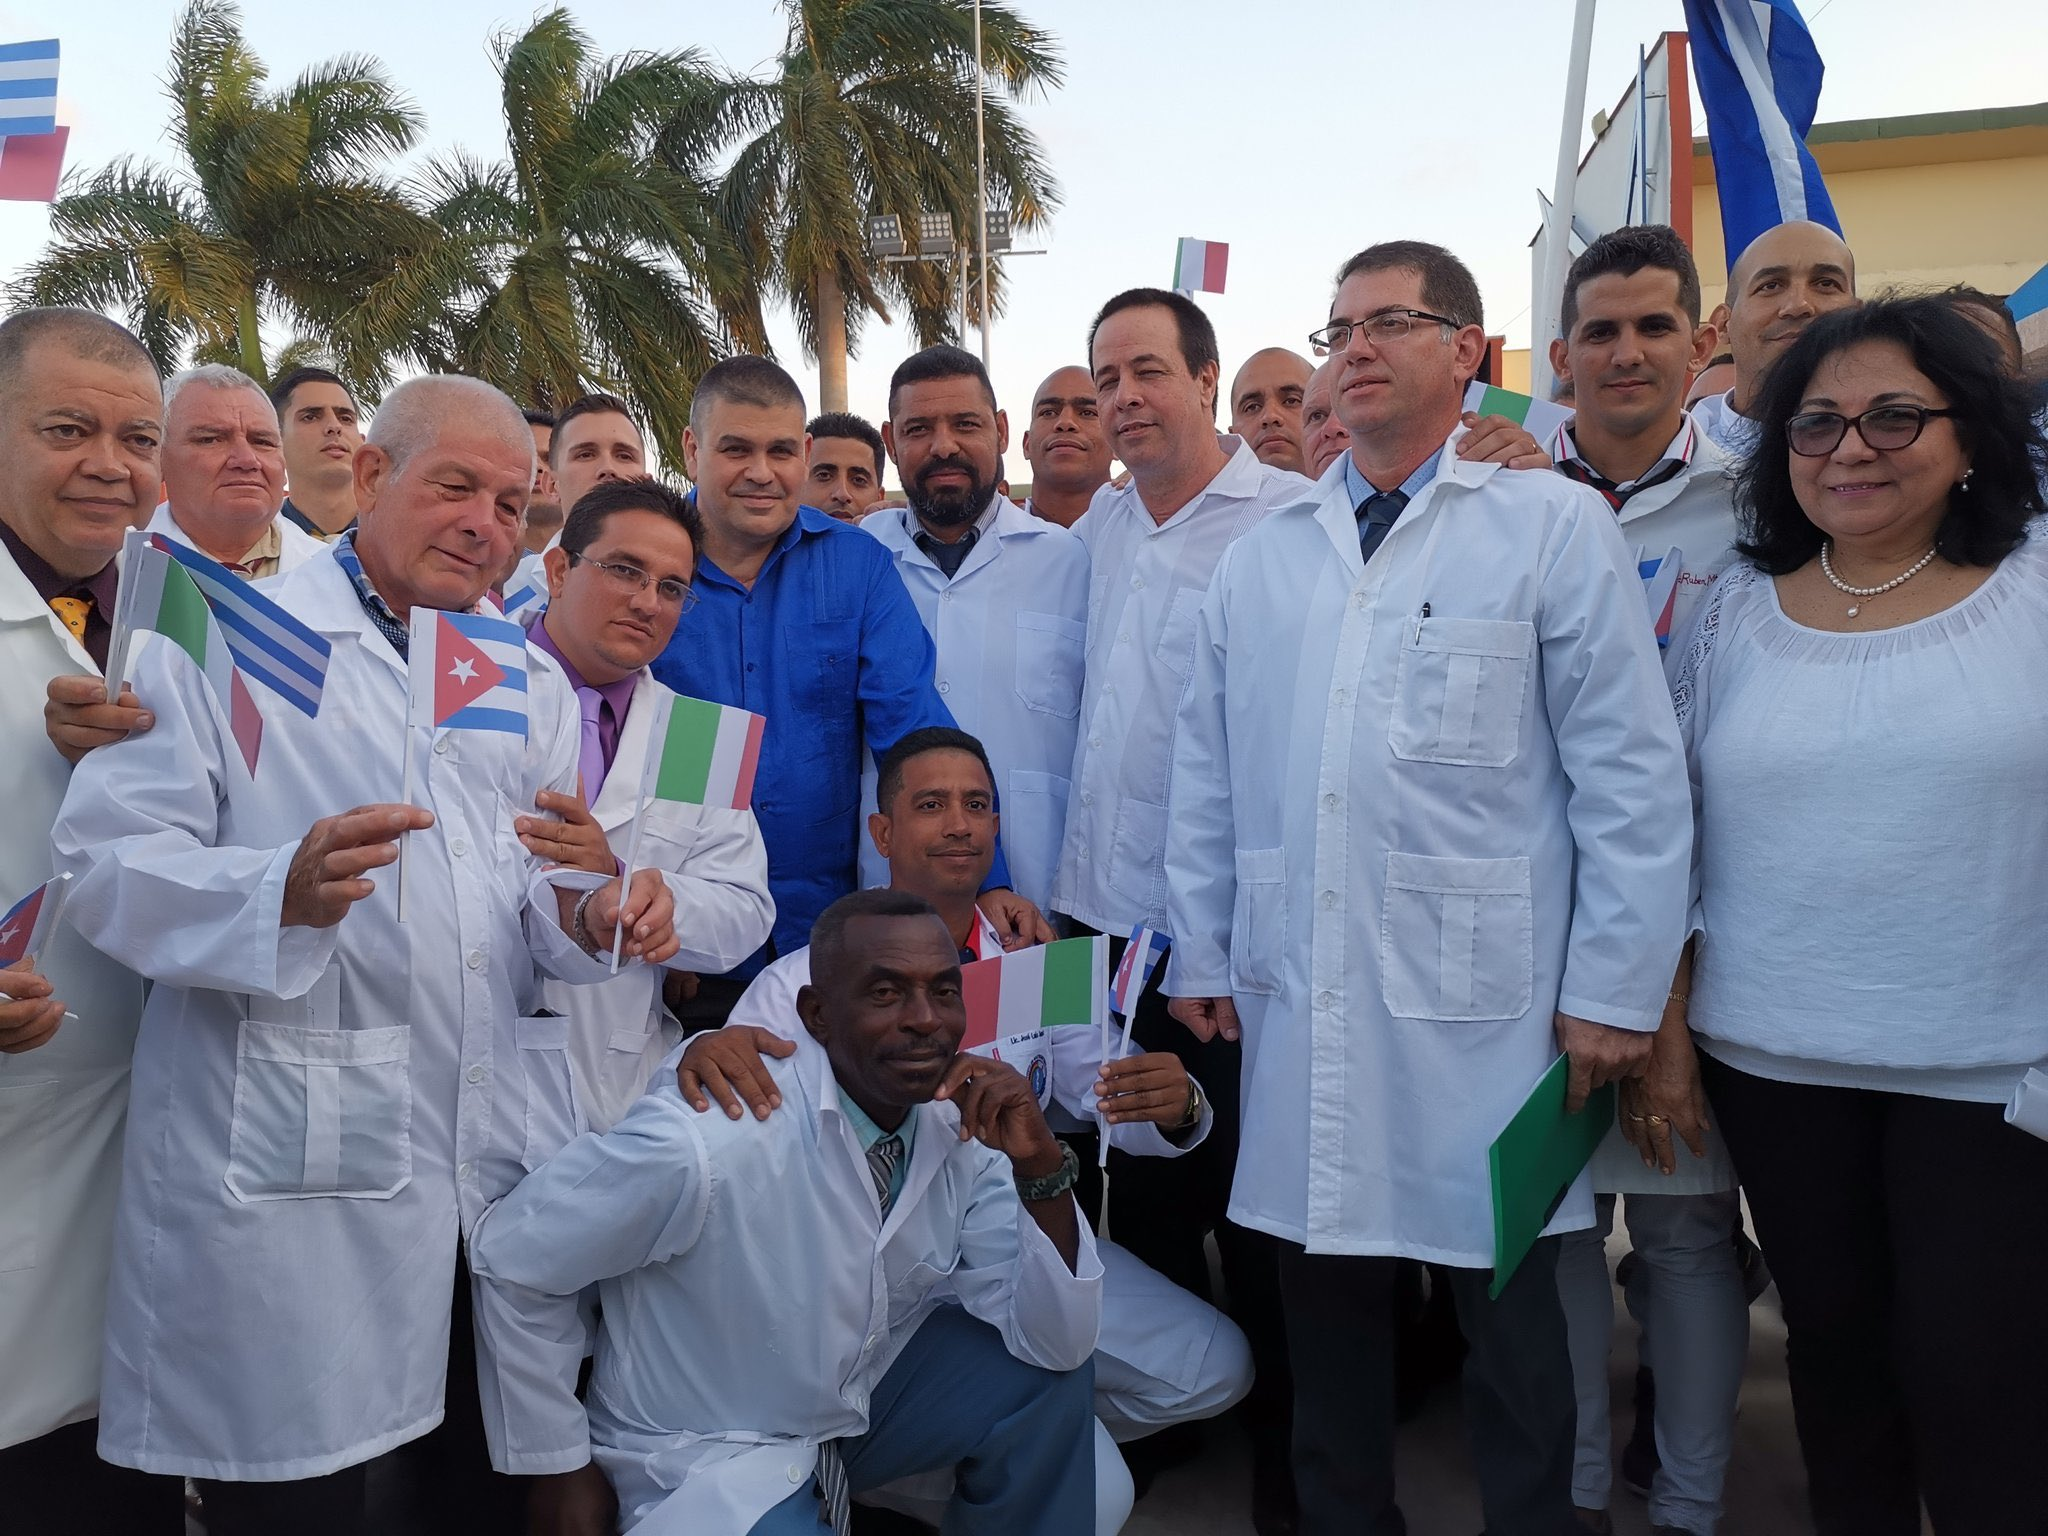 https://www.workers.org/wp-content/uploads/cuban-doctors-italy.jpeg